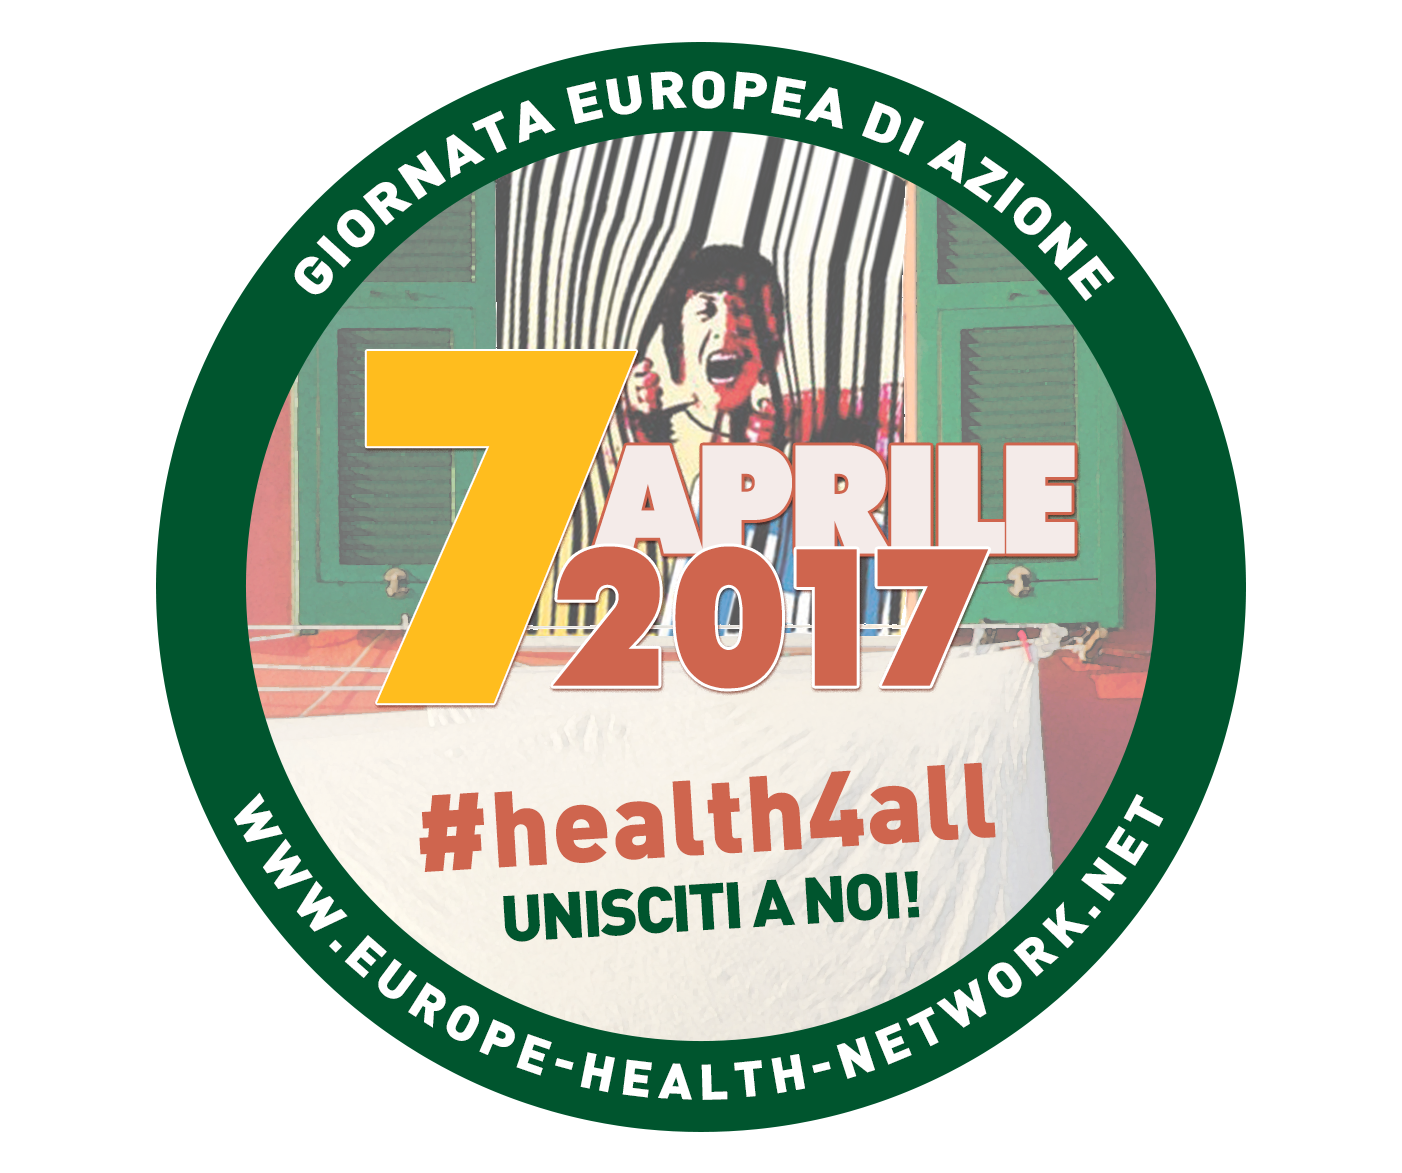 7 aprile 2017 – Health for all